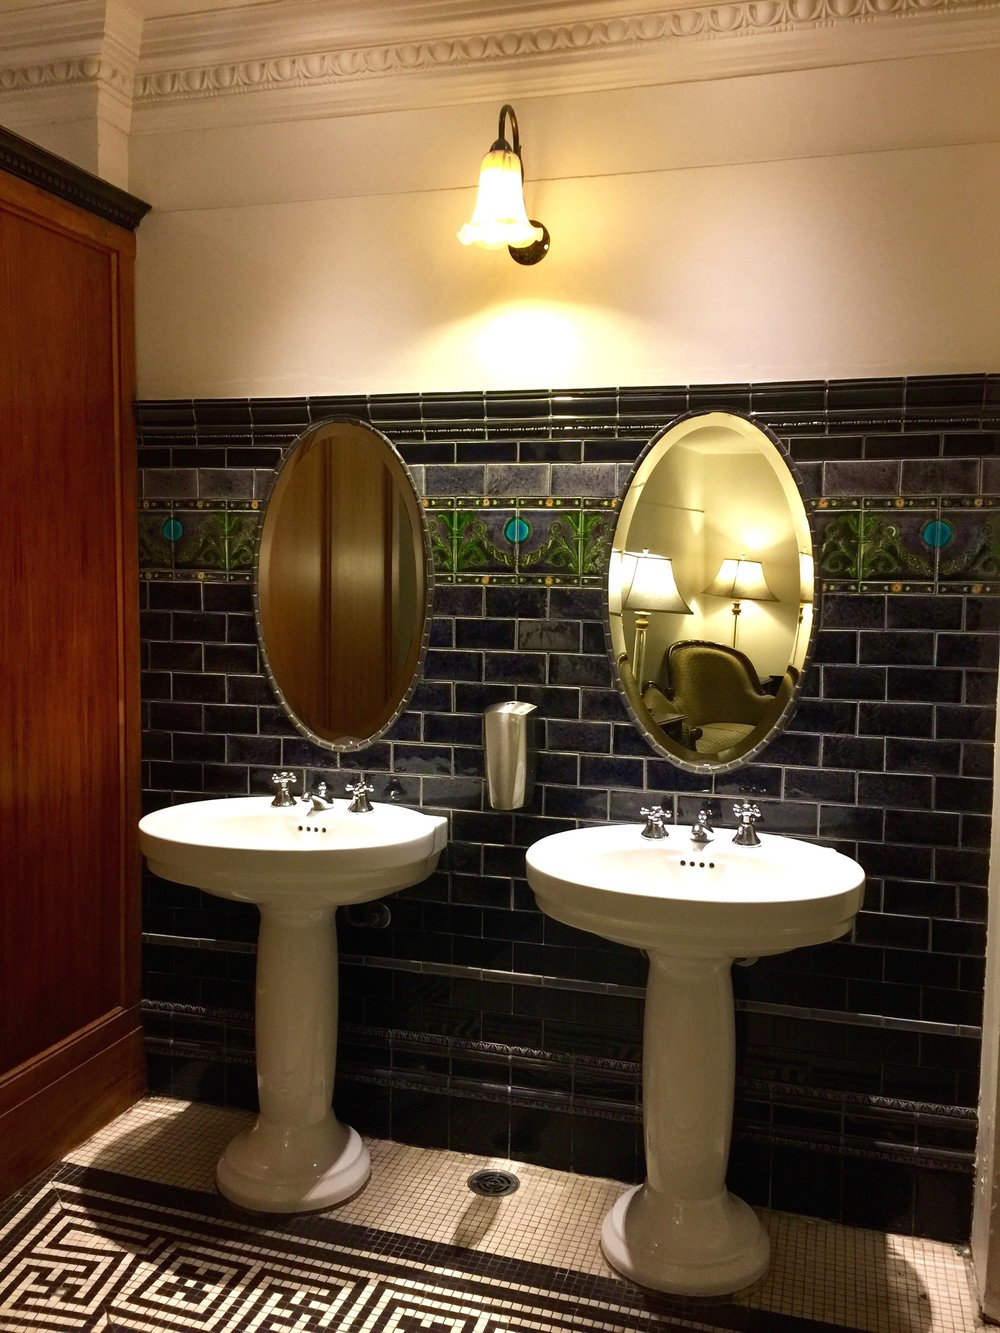 Art Deco toilets in Wellington's Embassy Cinema